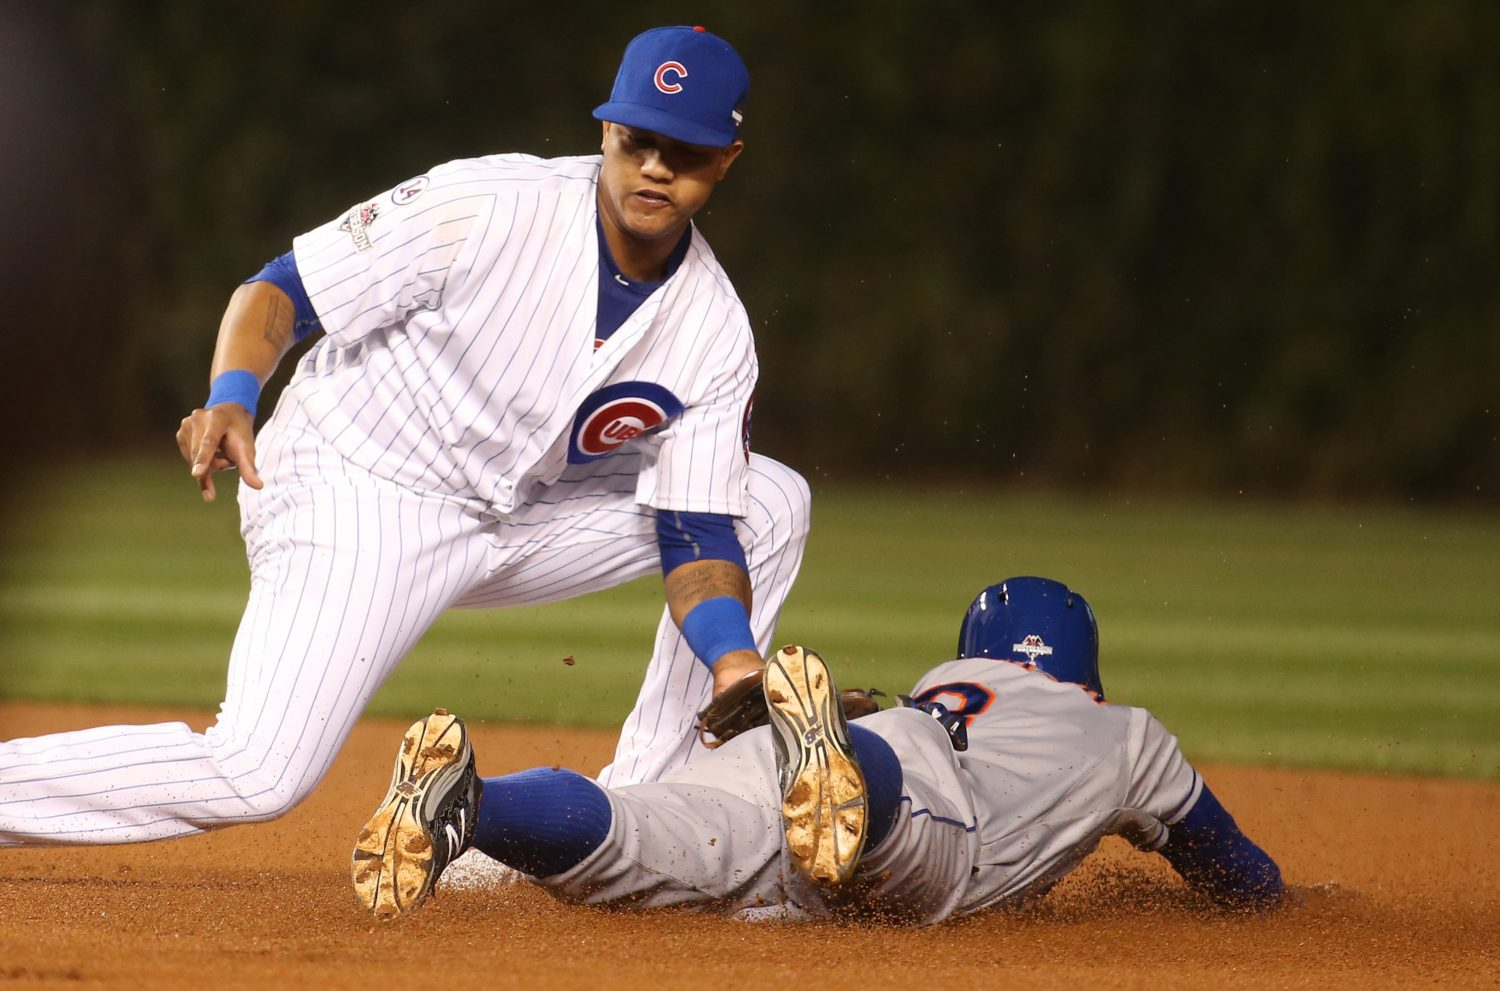 Chicago+Cubs+second+baseman+Starlin+Castro%2C+left%2C+tags+out+the+New+York+Mets%27+Curtis+Granderson+on+an+attempted+steal+in+the+first+inning+during+Game+3+of+the+NLCS+on+Tuesday%2C+Oct.+20%2C+2015%2C+at+Wrigley+Field+in+Chicago.+%28Brian+Cassella%2FChicago+Tribune%2FTNS%29